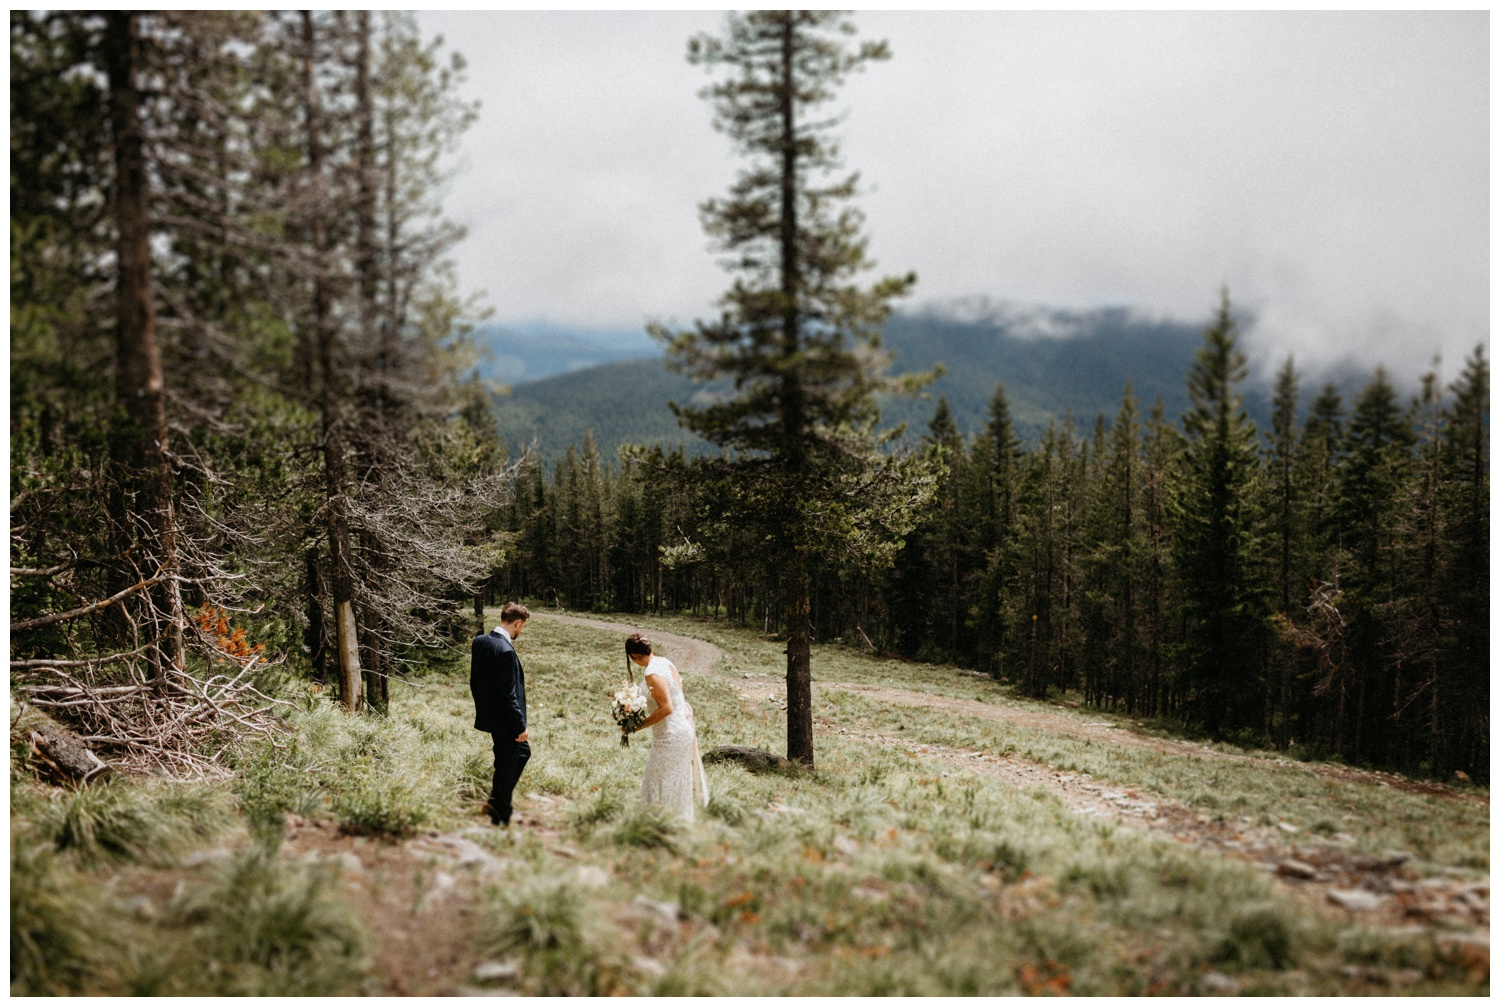 jasmine-j-photography-mt-hood-skibowl-wedding_0021.jpg